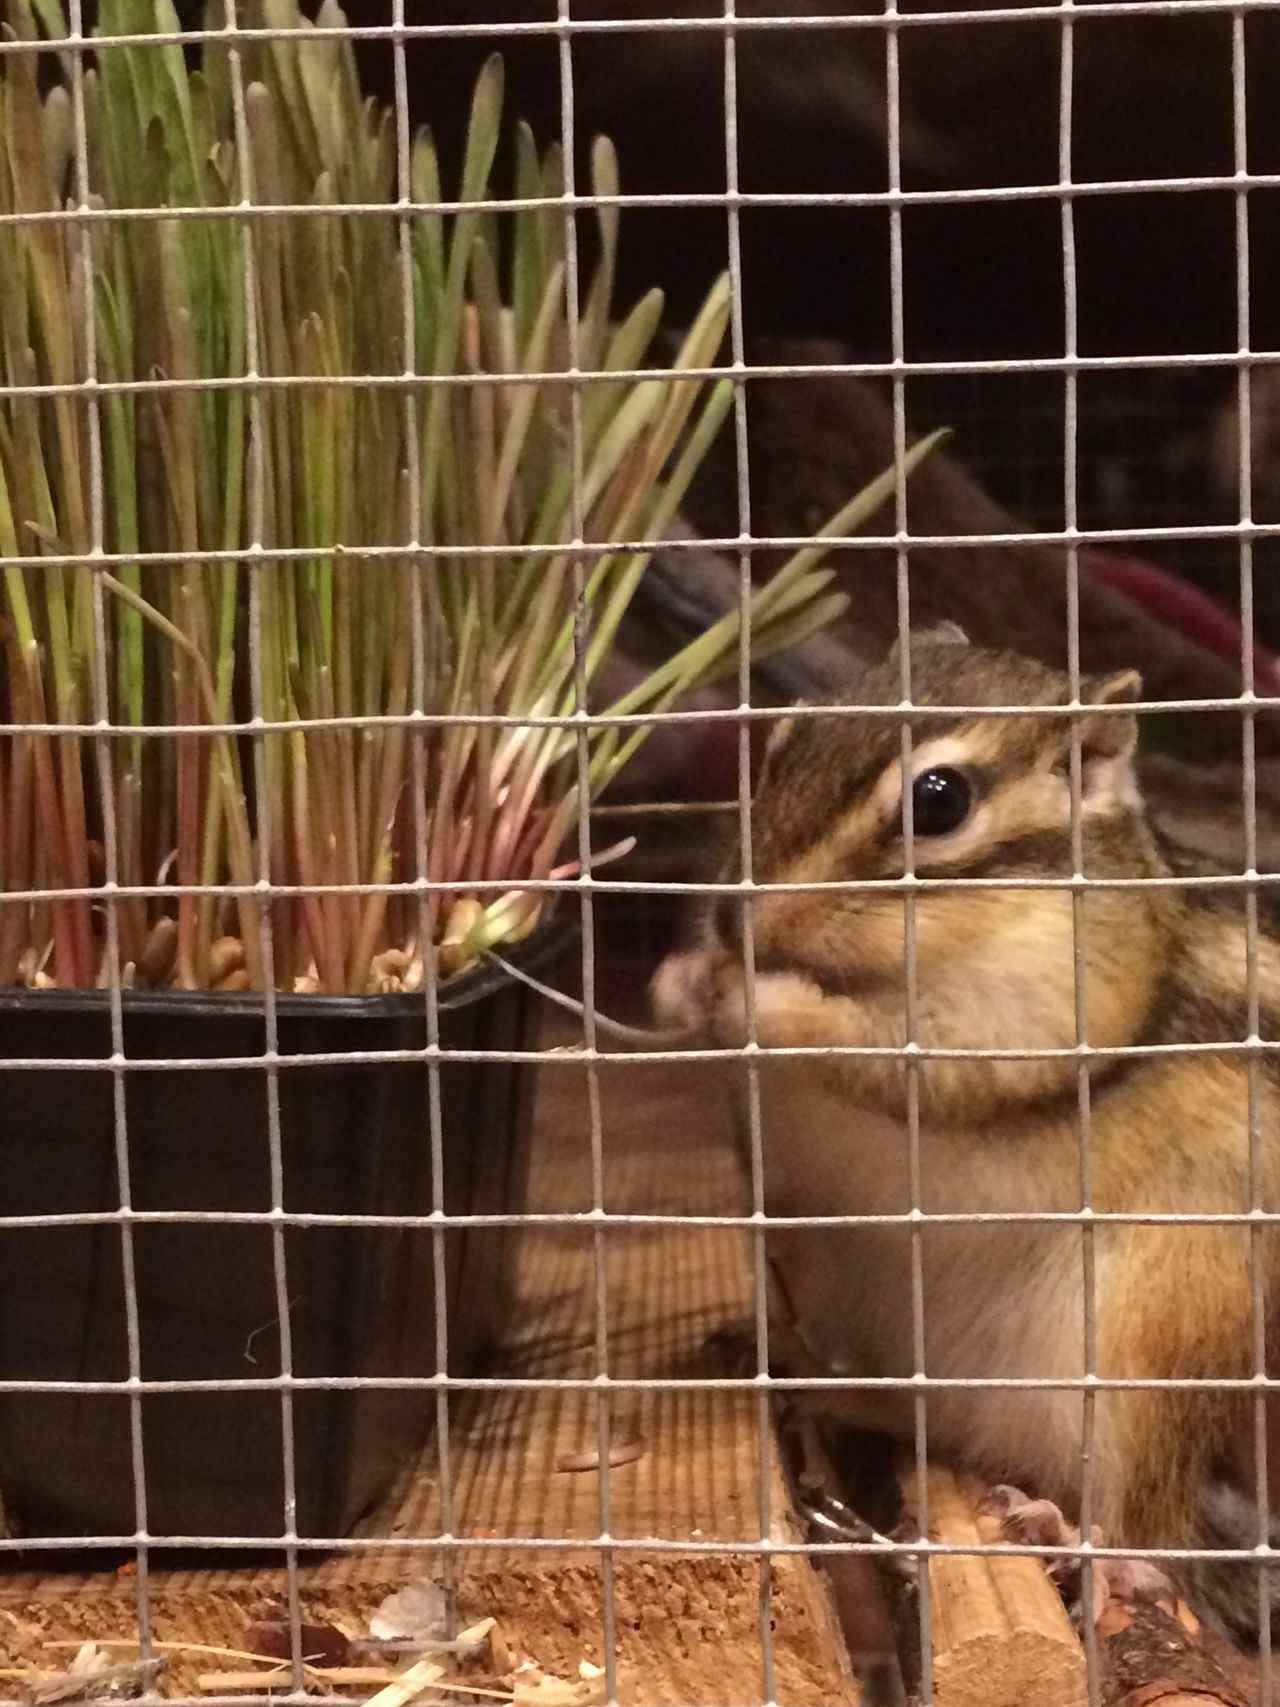 Animal Themes Animal Wildlife Animals In Captivity Cage Chipmunk Chipmunk Close-up Chipmunk Eating Chipmunk Photography Chipmunkcheeks Chipmunkface Chipmunks  Close-up Day Domestic Animals Domestic Life Hamster Mammal Nature No People One Animal Pet Pet Photography  Pets Stripes Everywhere